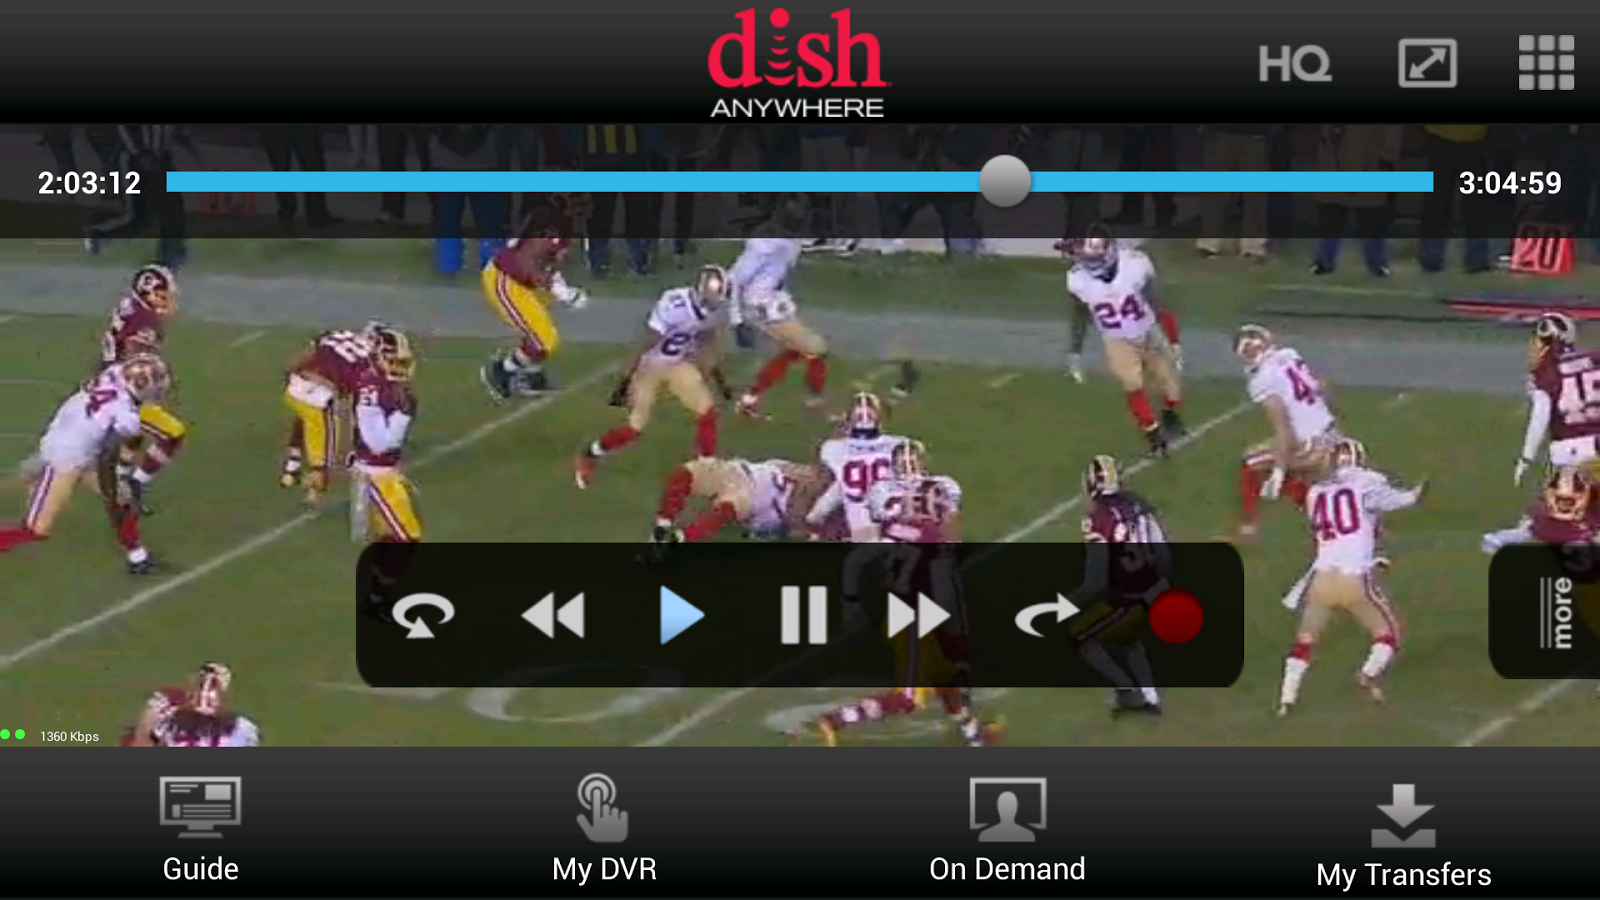 DISH Anywhere - screenshot